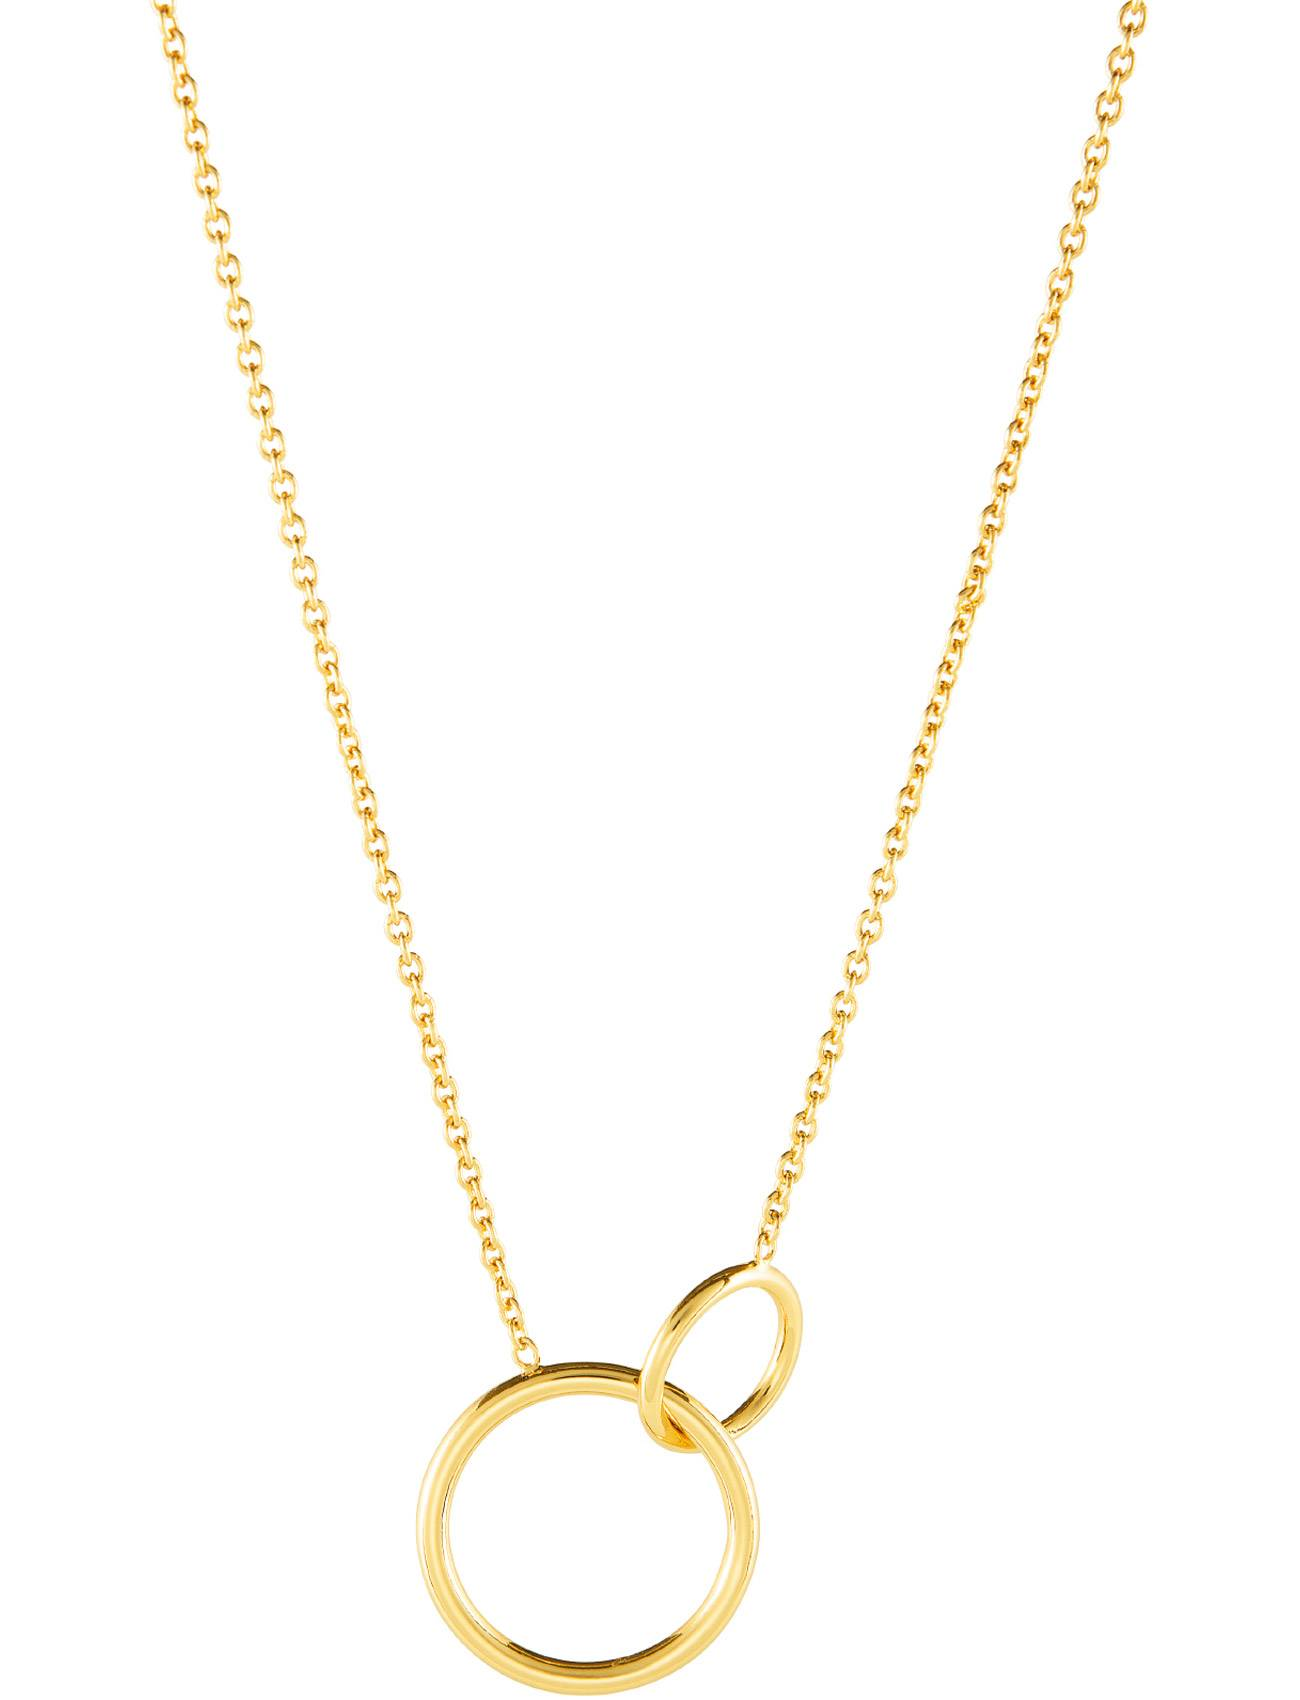 SOPHIE by SOPHIE Mini Circle Necklace